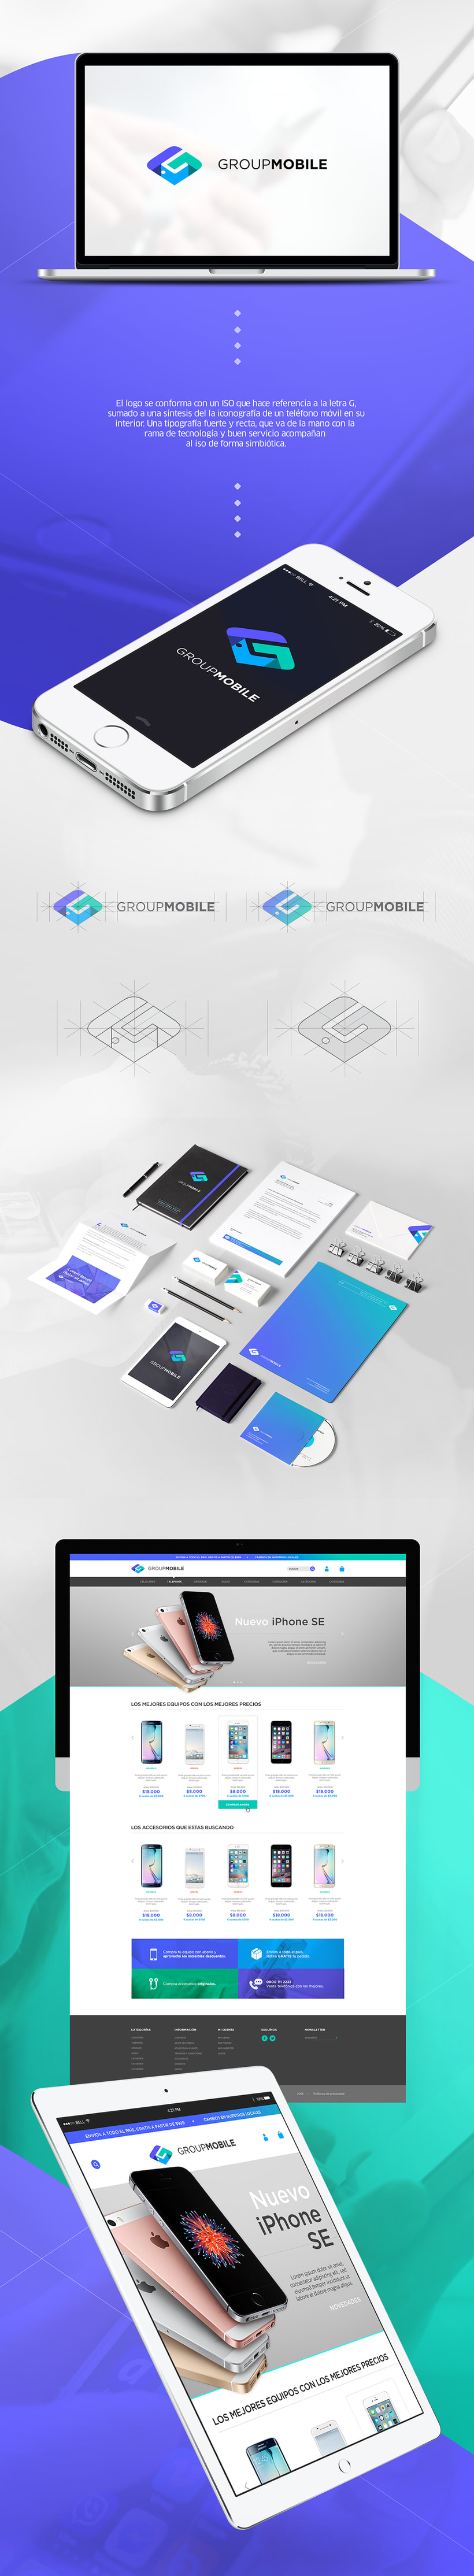 GROUP MOBILE - Branding & E Commerce -1